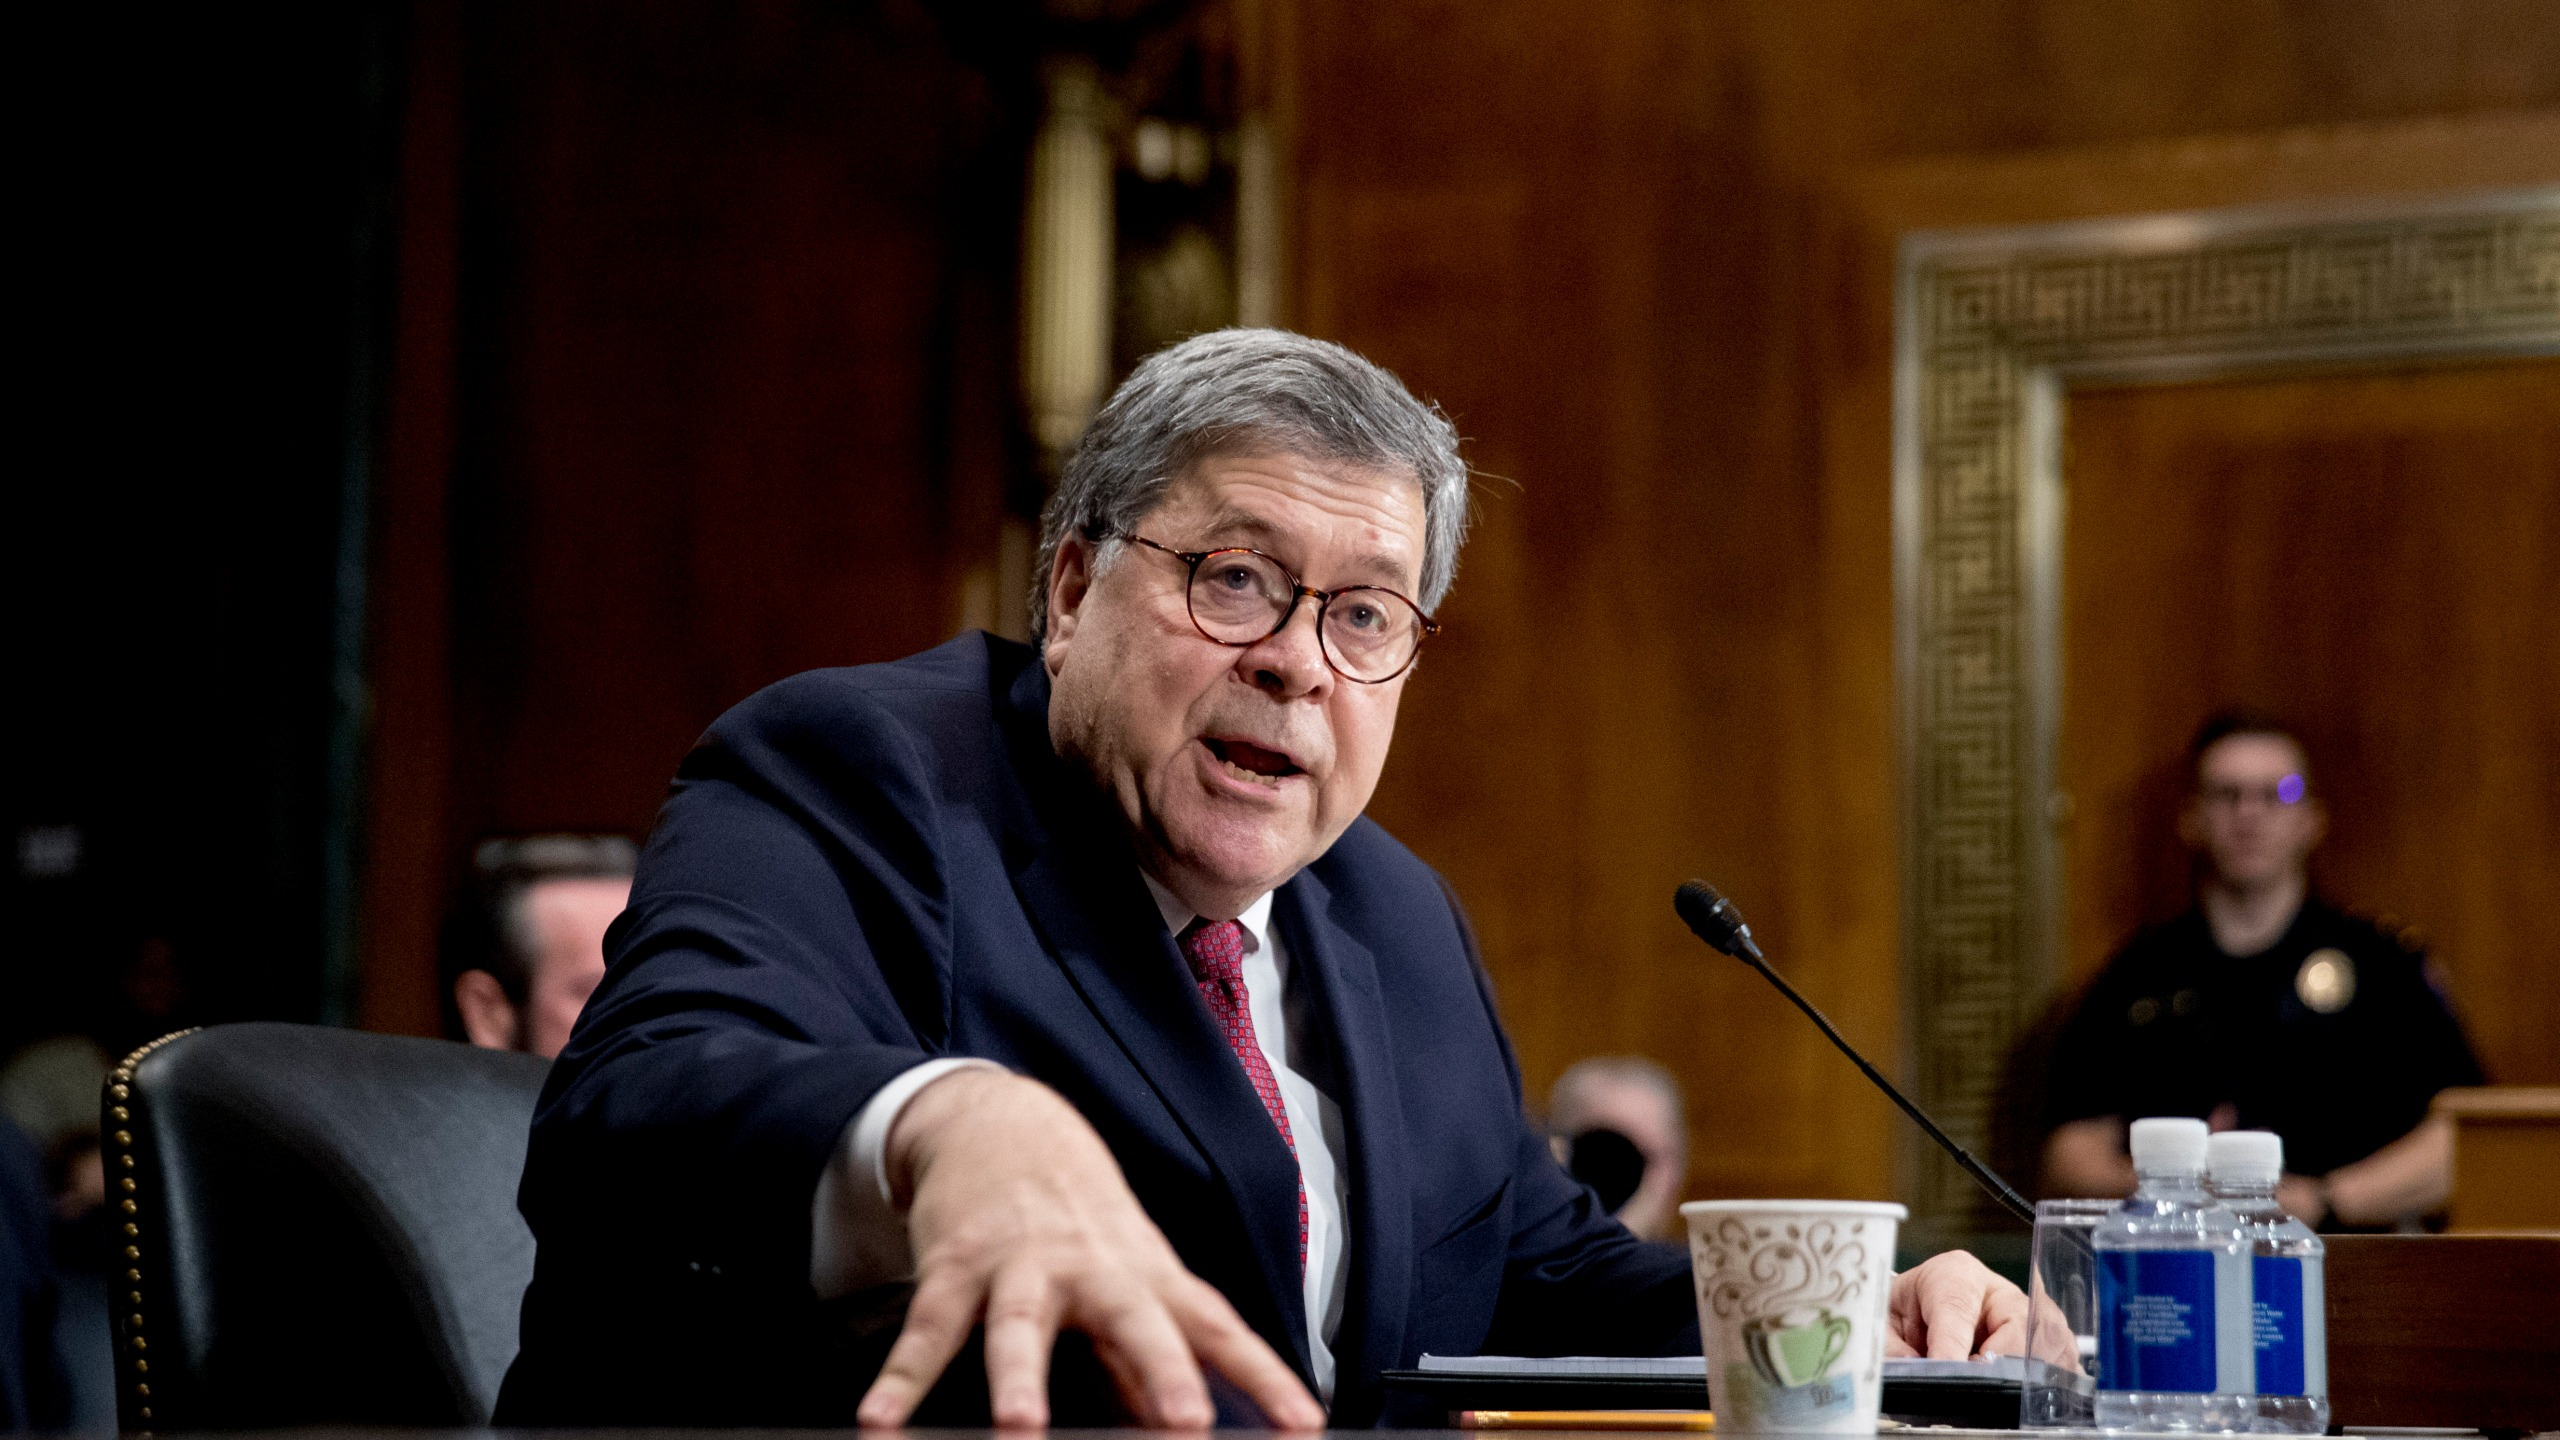 Trump_Russia_Probe_Barr_06263-159532.jpg06806086